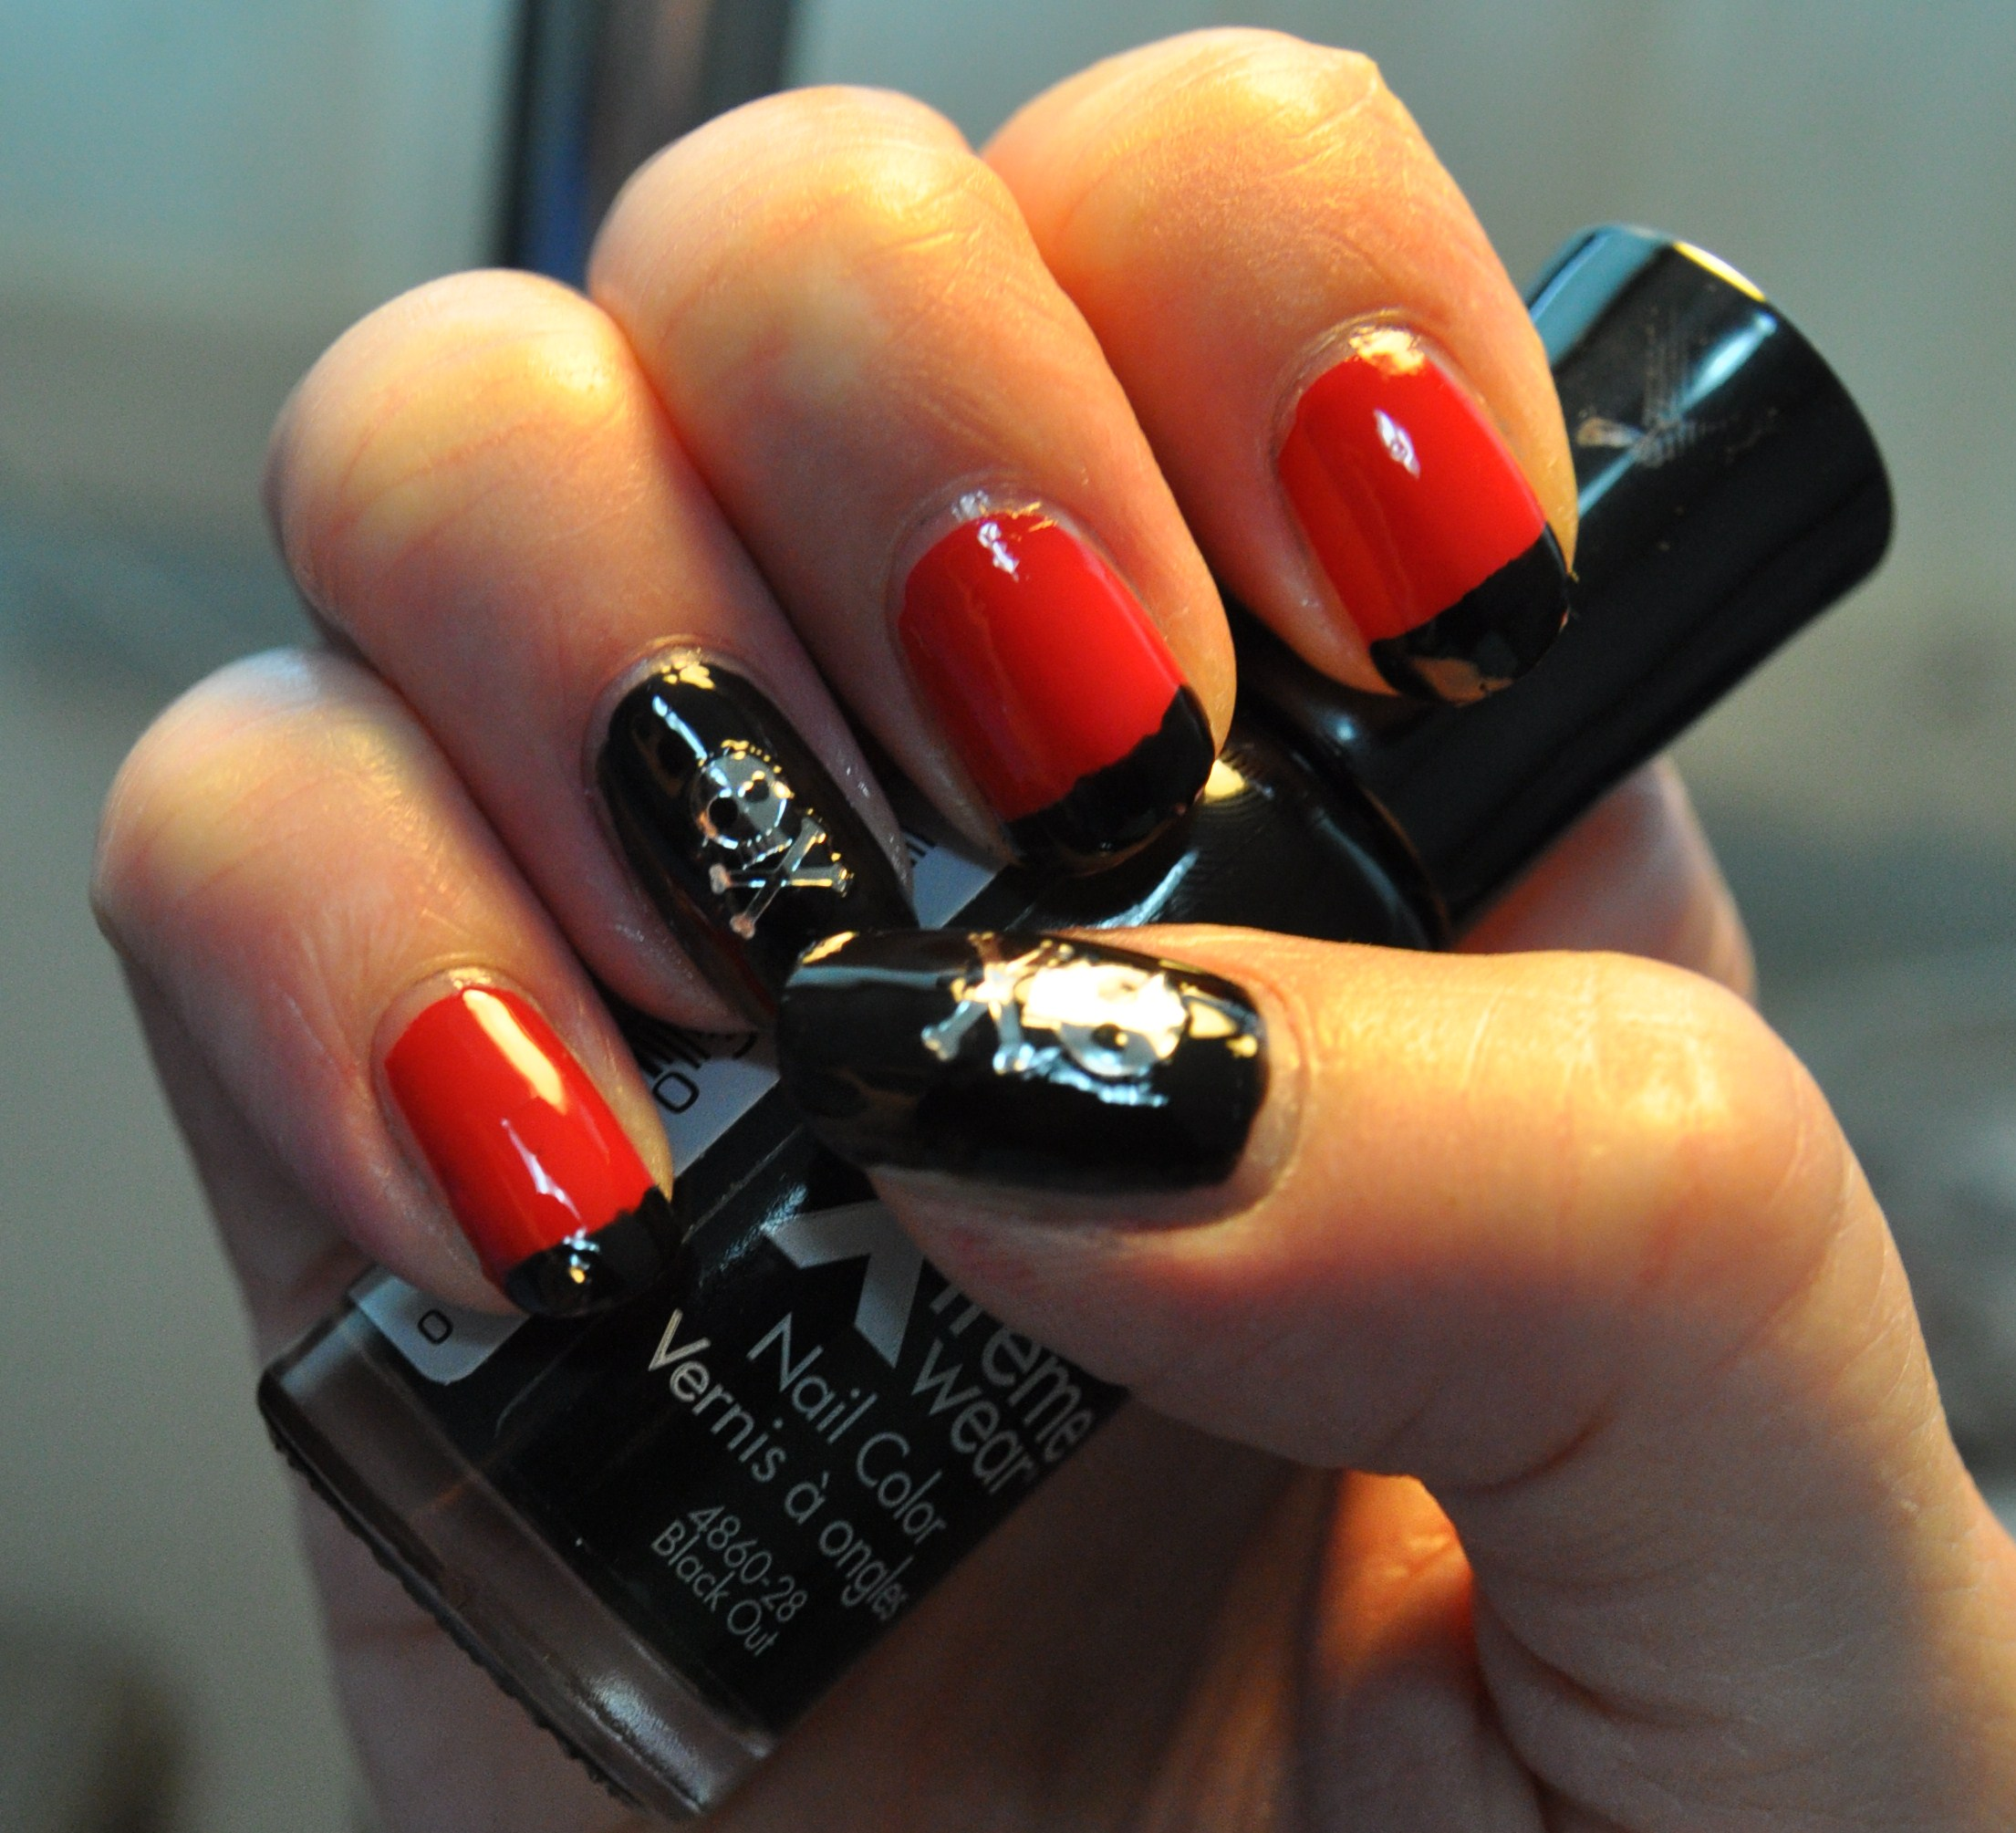 Categories: French Manicure, Halloween ...